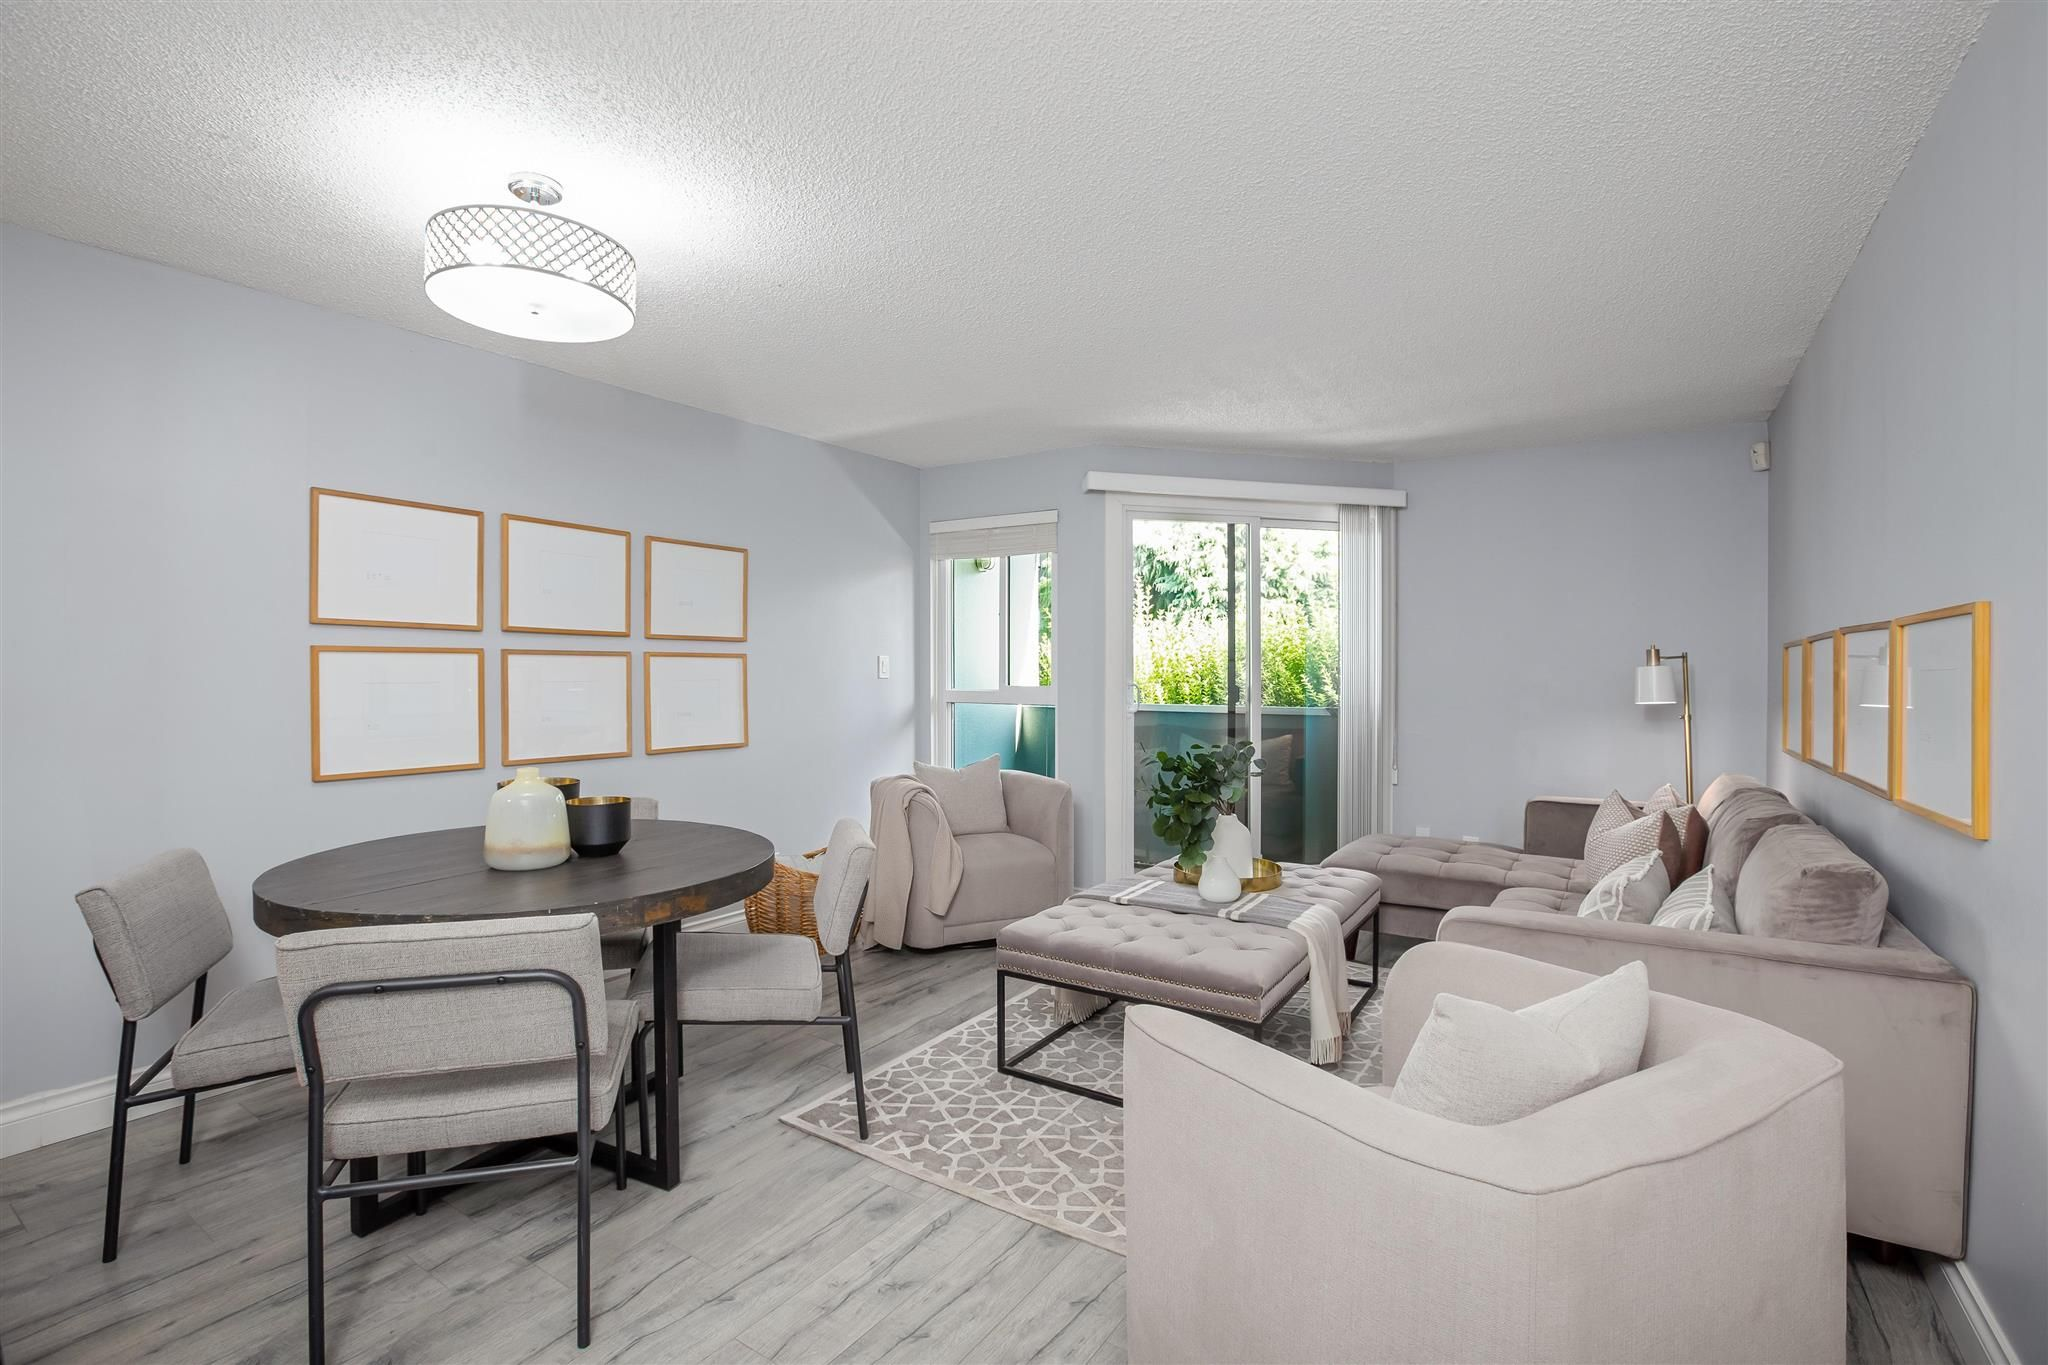 """Main Photo: 7 1870 YEW Street in Vancouver: Kitsilano Townhouse for sale in """"NEWPORT MEWS"""" (Vancouver West)  : MLS®# R2592619"""